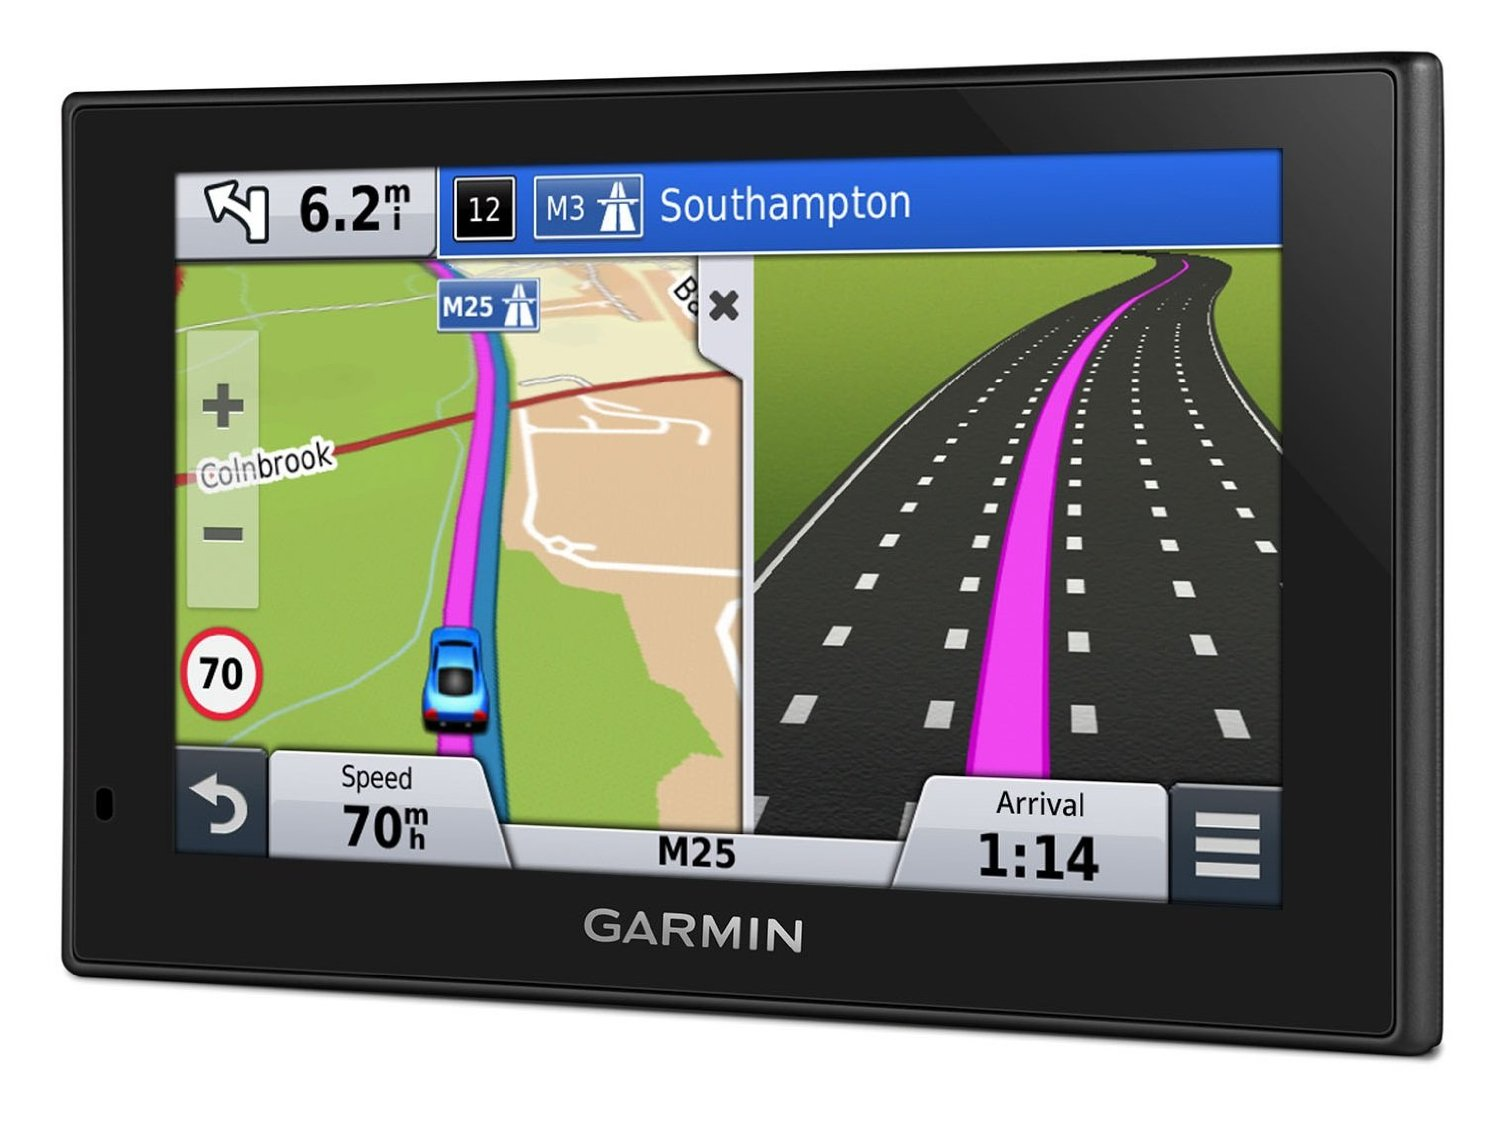 garmin nuvi 2559lm 5 lcd gps satnav free lifetime western europe map updates 753759159825 ebay. Black Bedroom Furniture Sets. Home Design Ideas